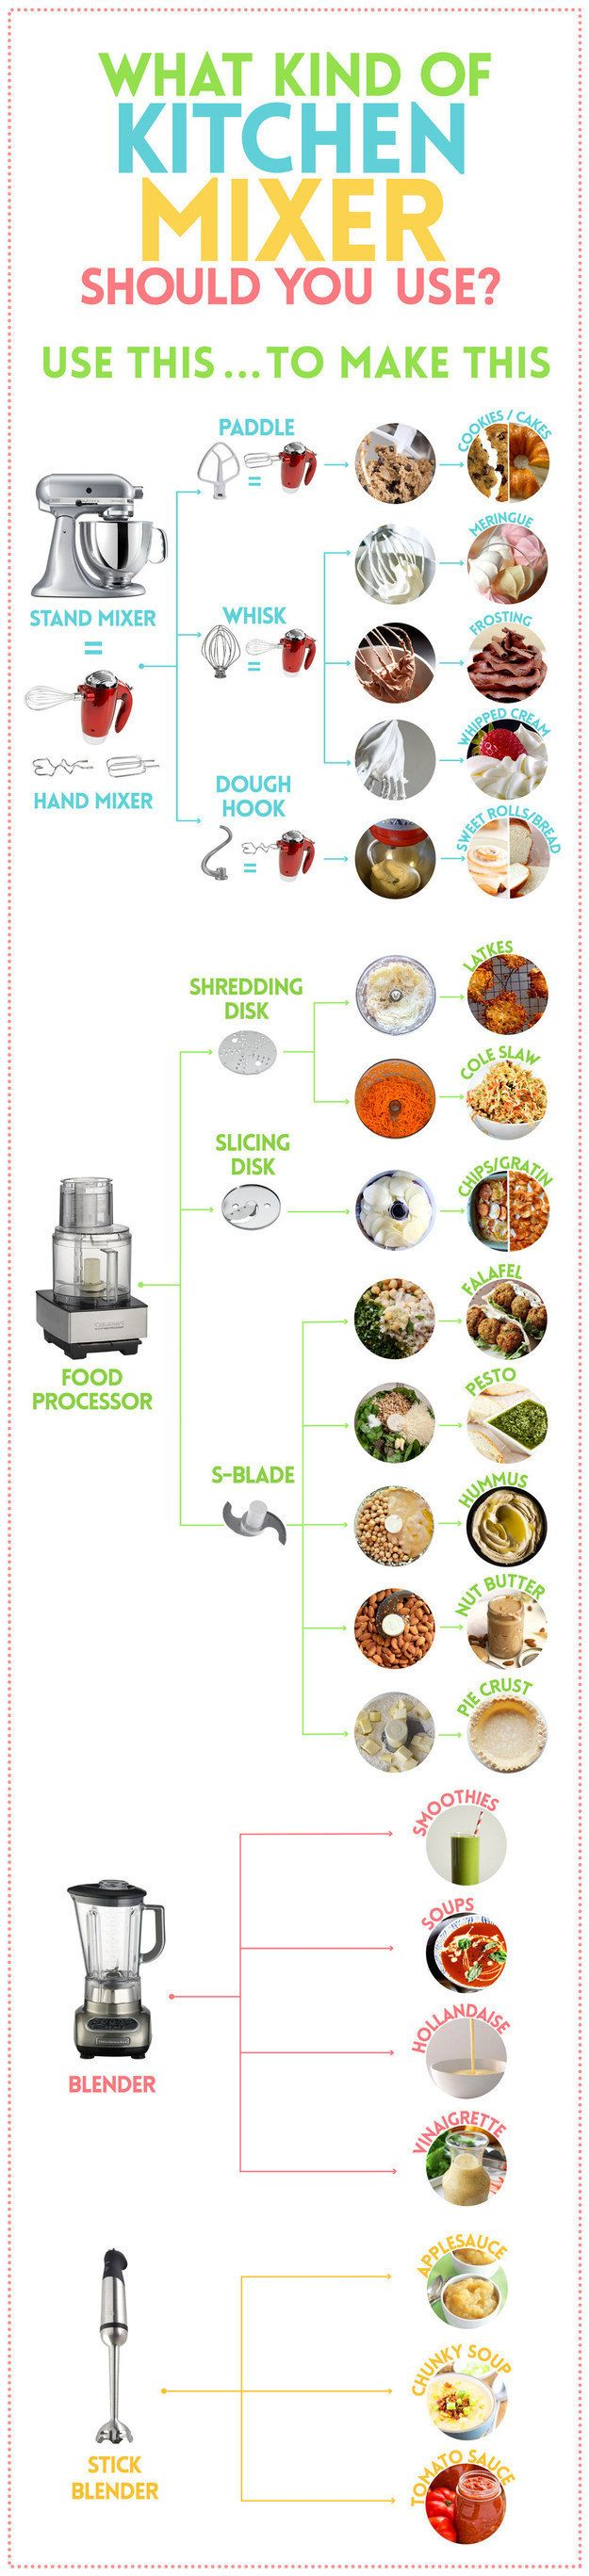 best recipes cooking tips images on pinterest